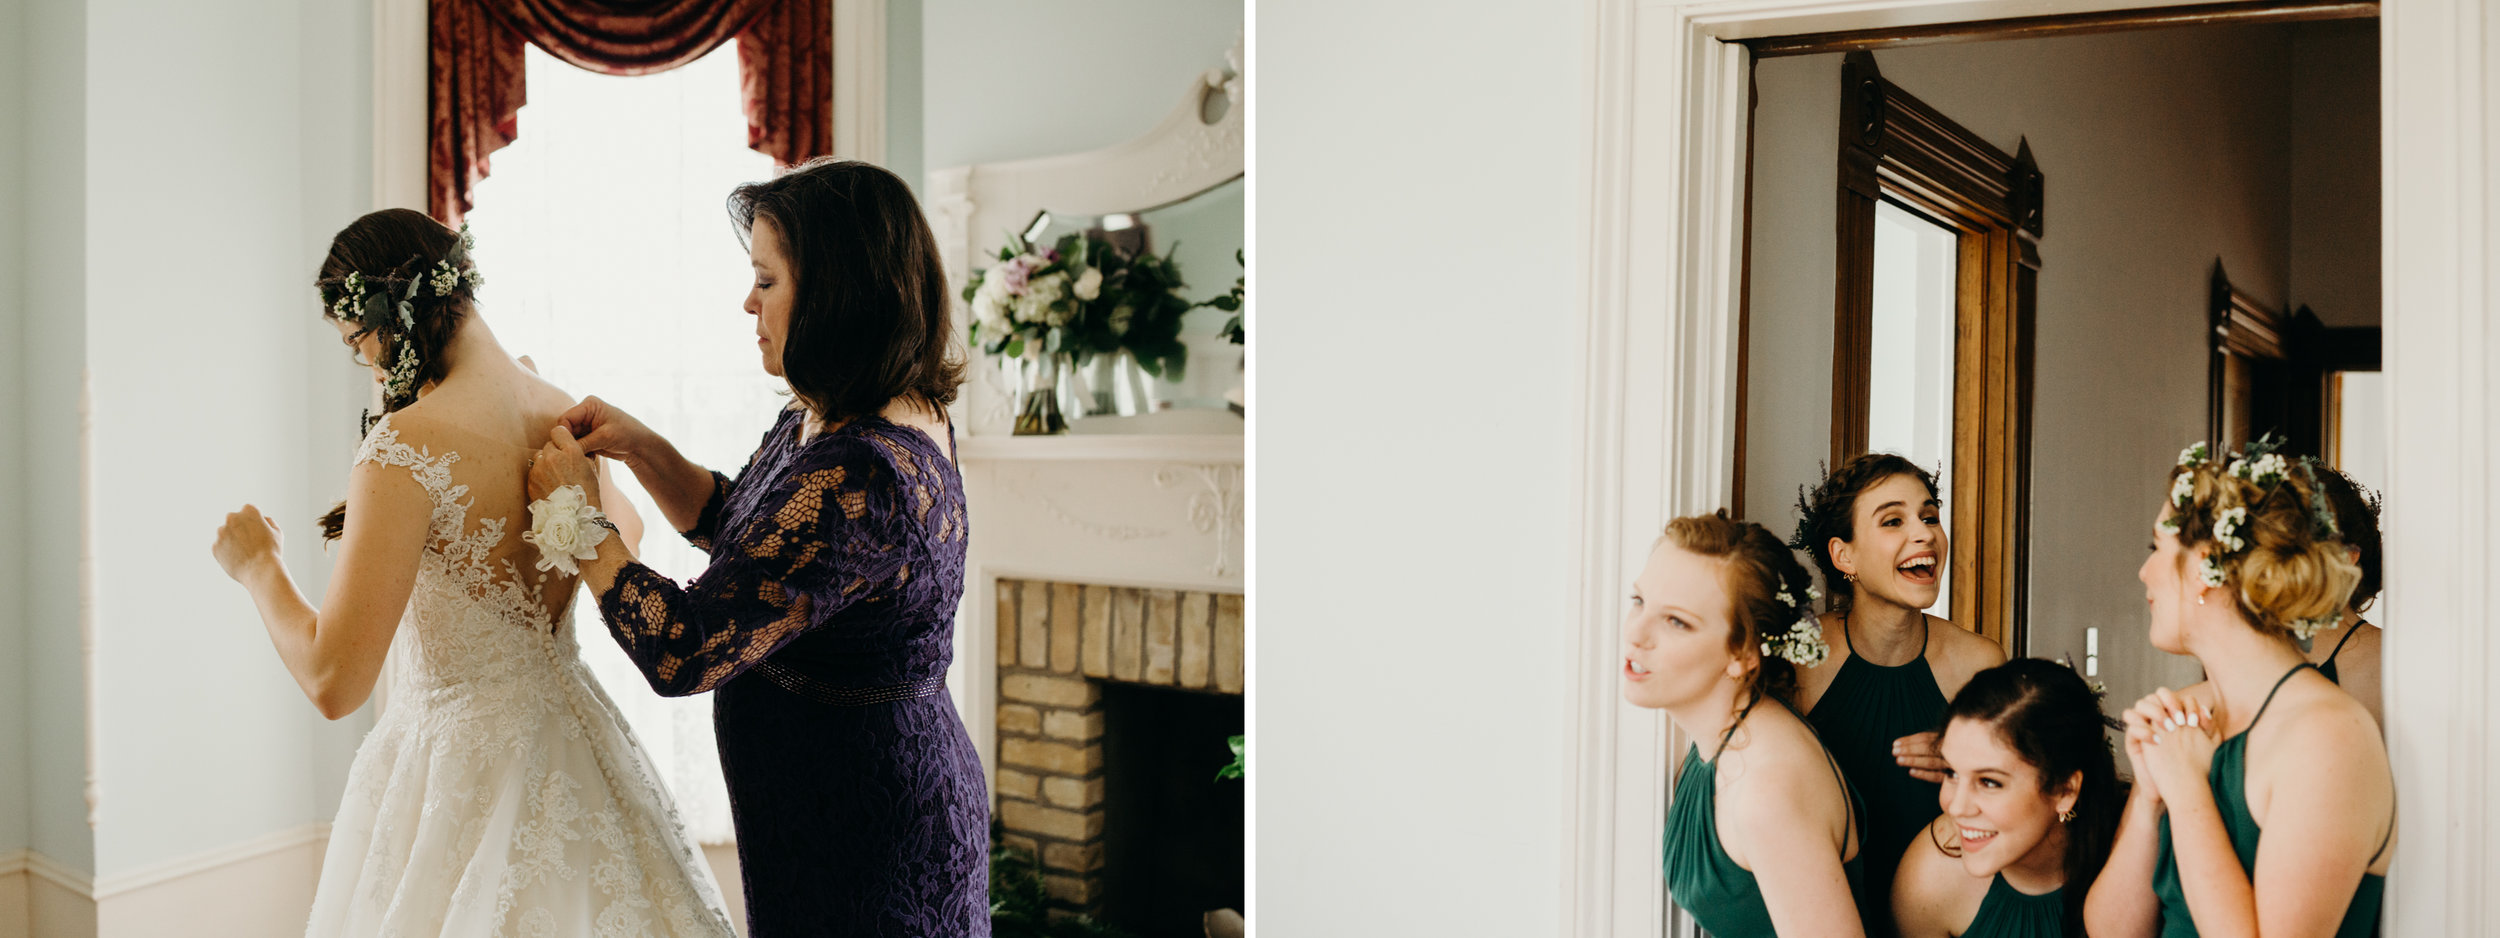 jenna and her mom getting ready.jpg